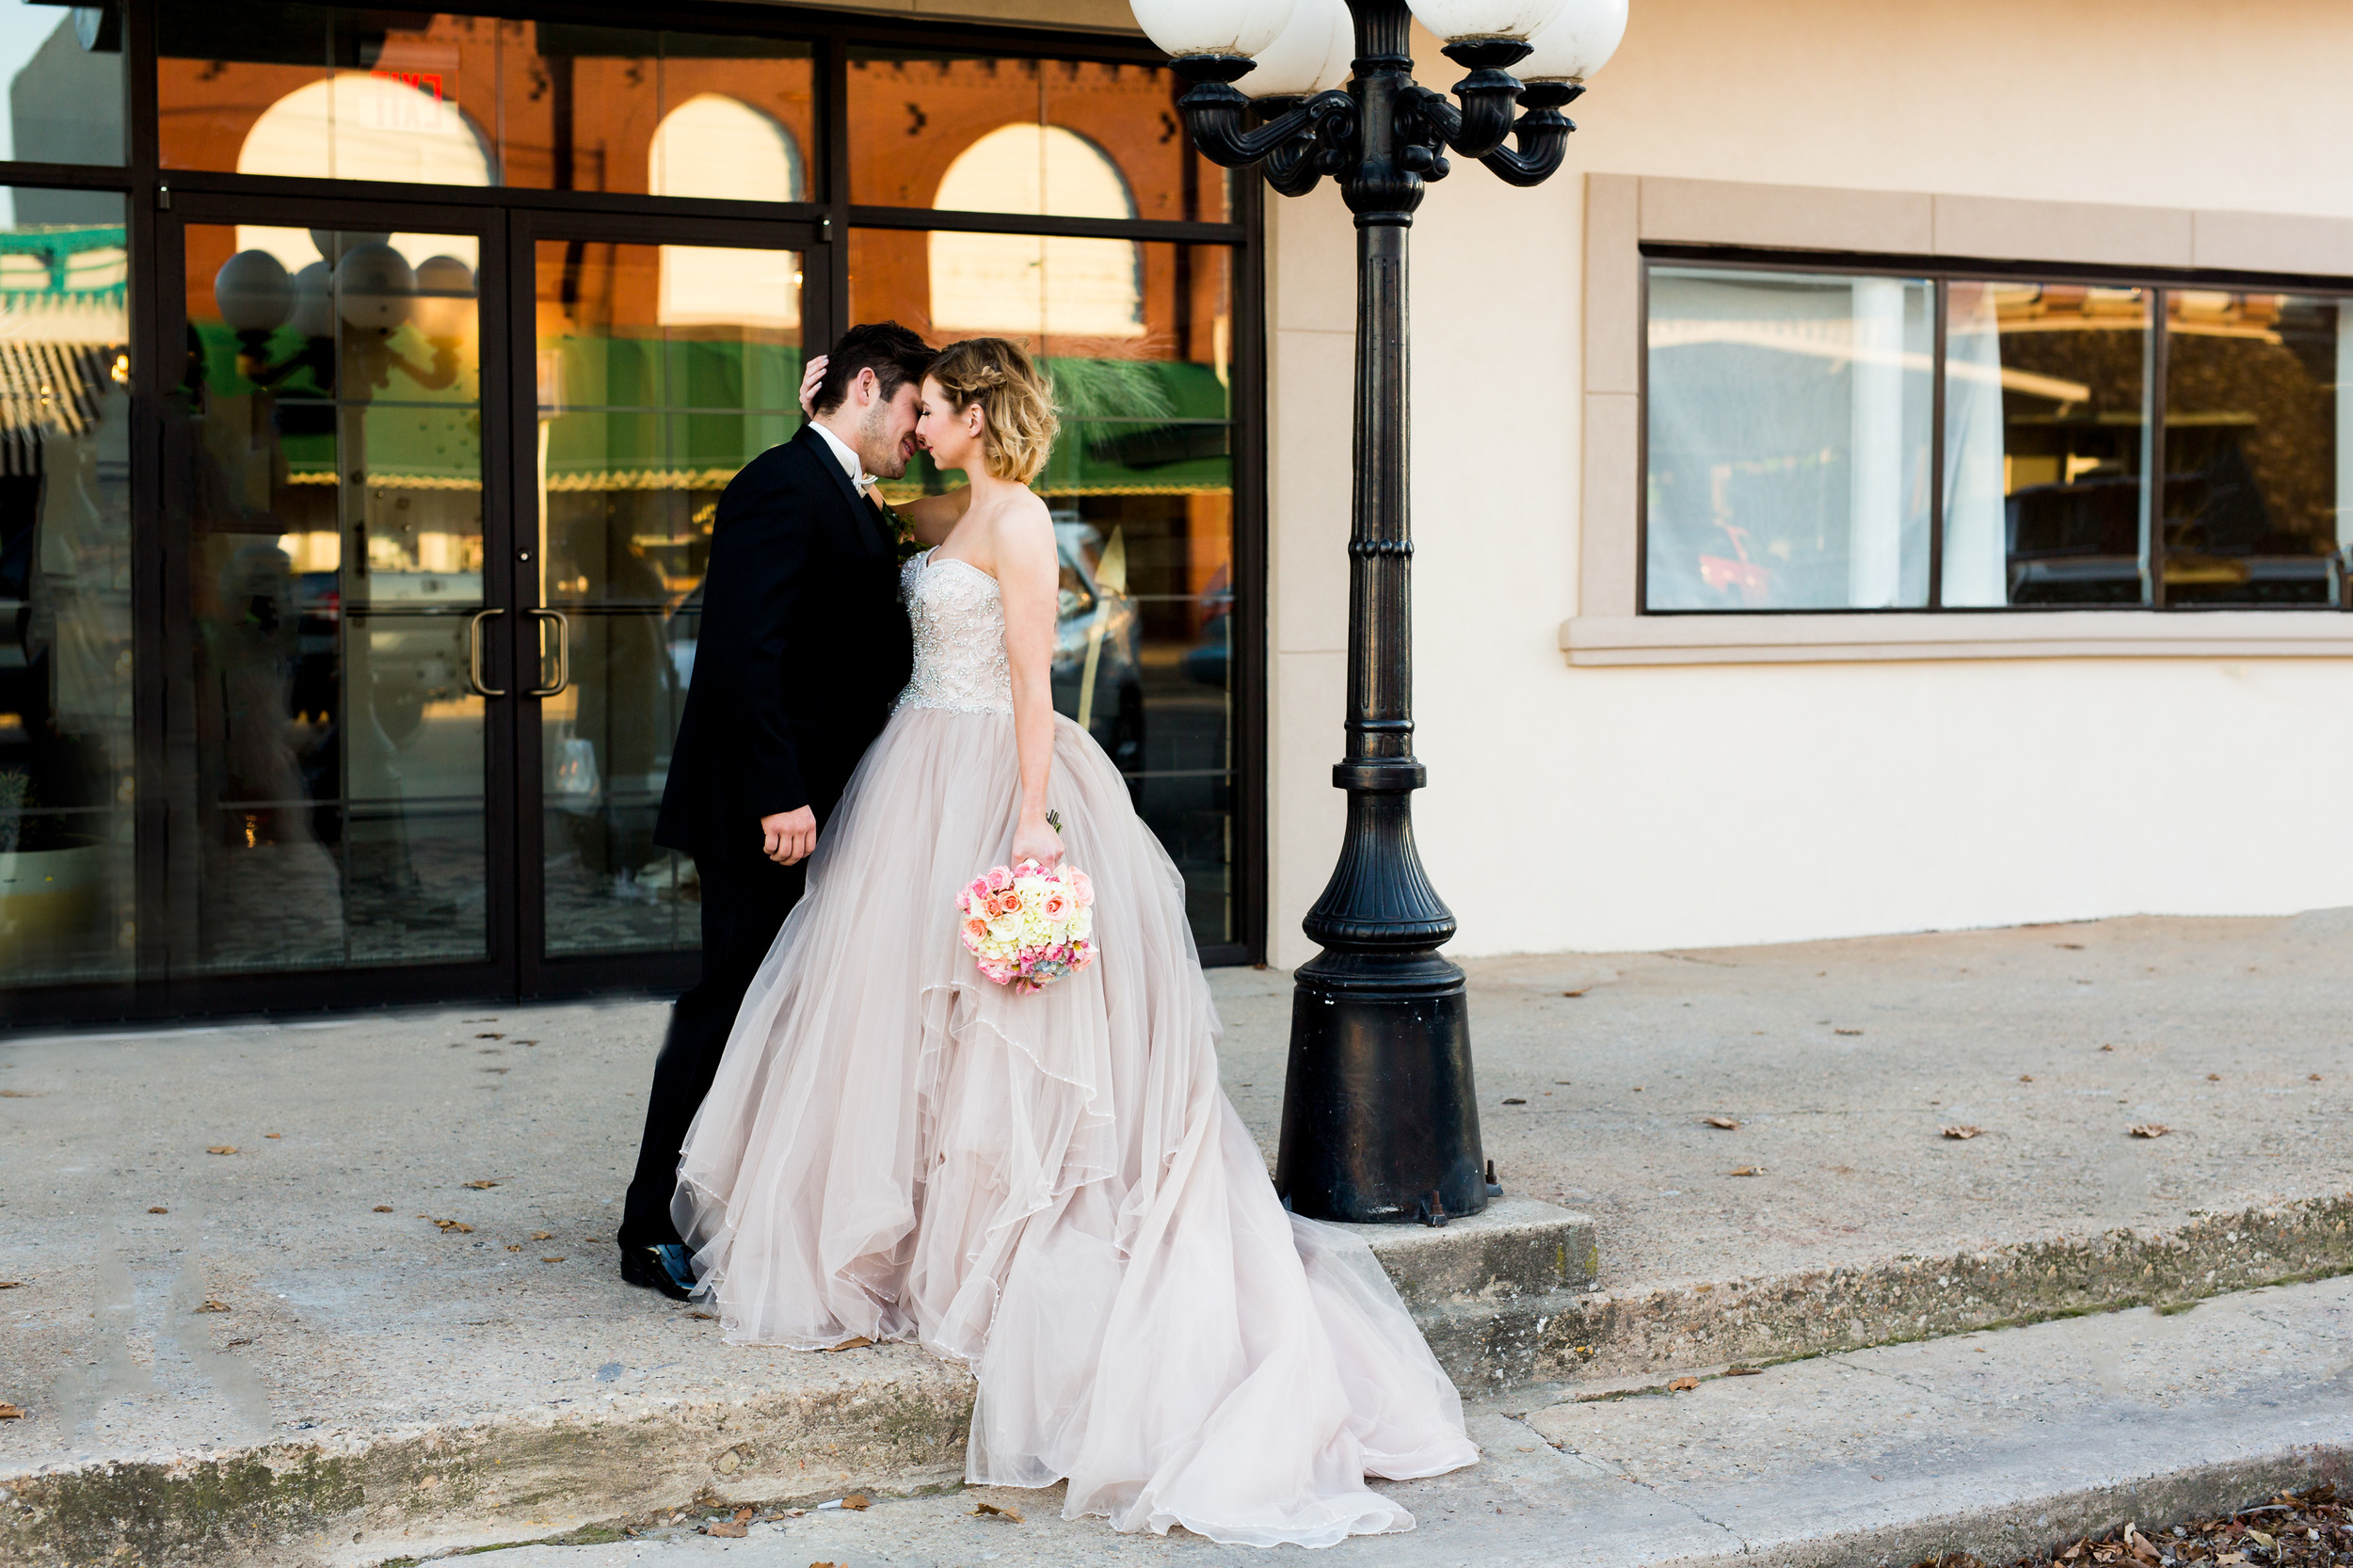 The Grand Canadian Theater OKC Purcell Wedding Venue Ashley Porton Photography Lamppost